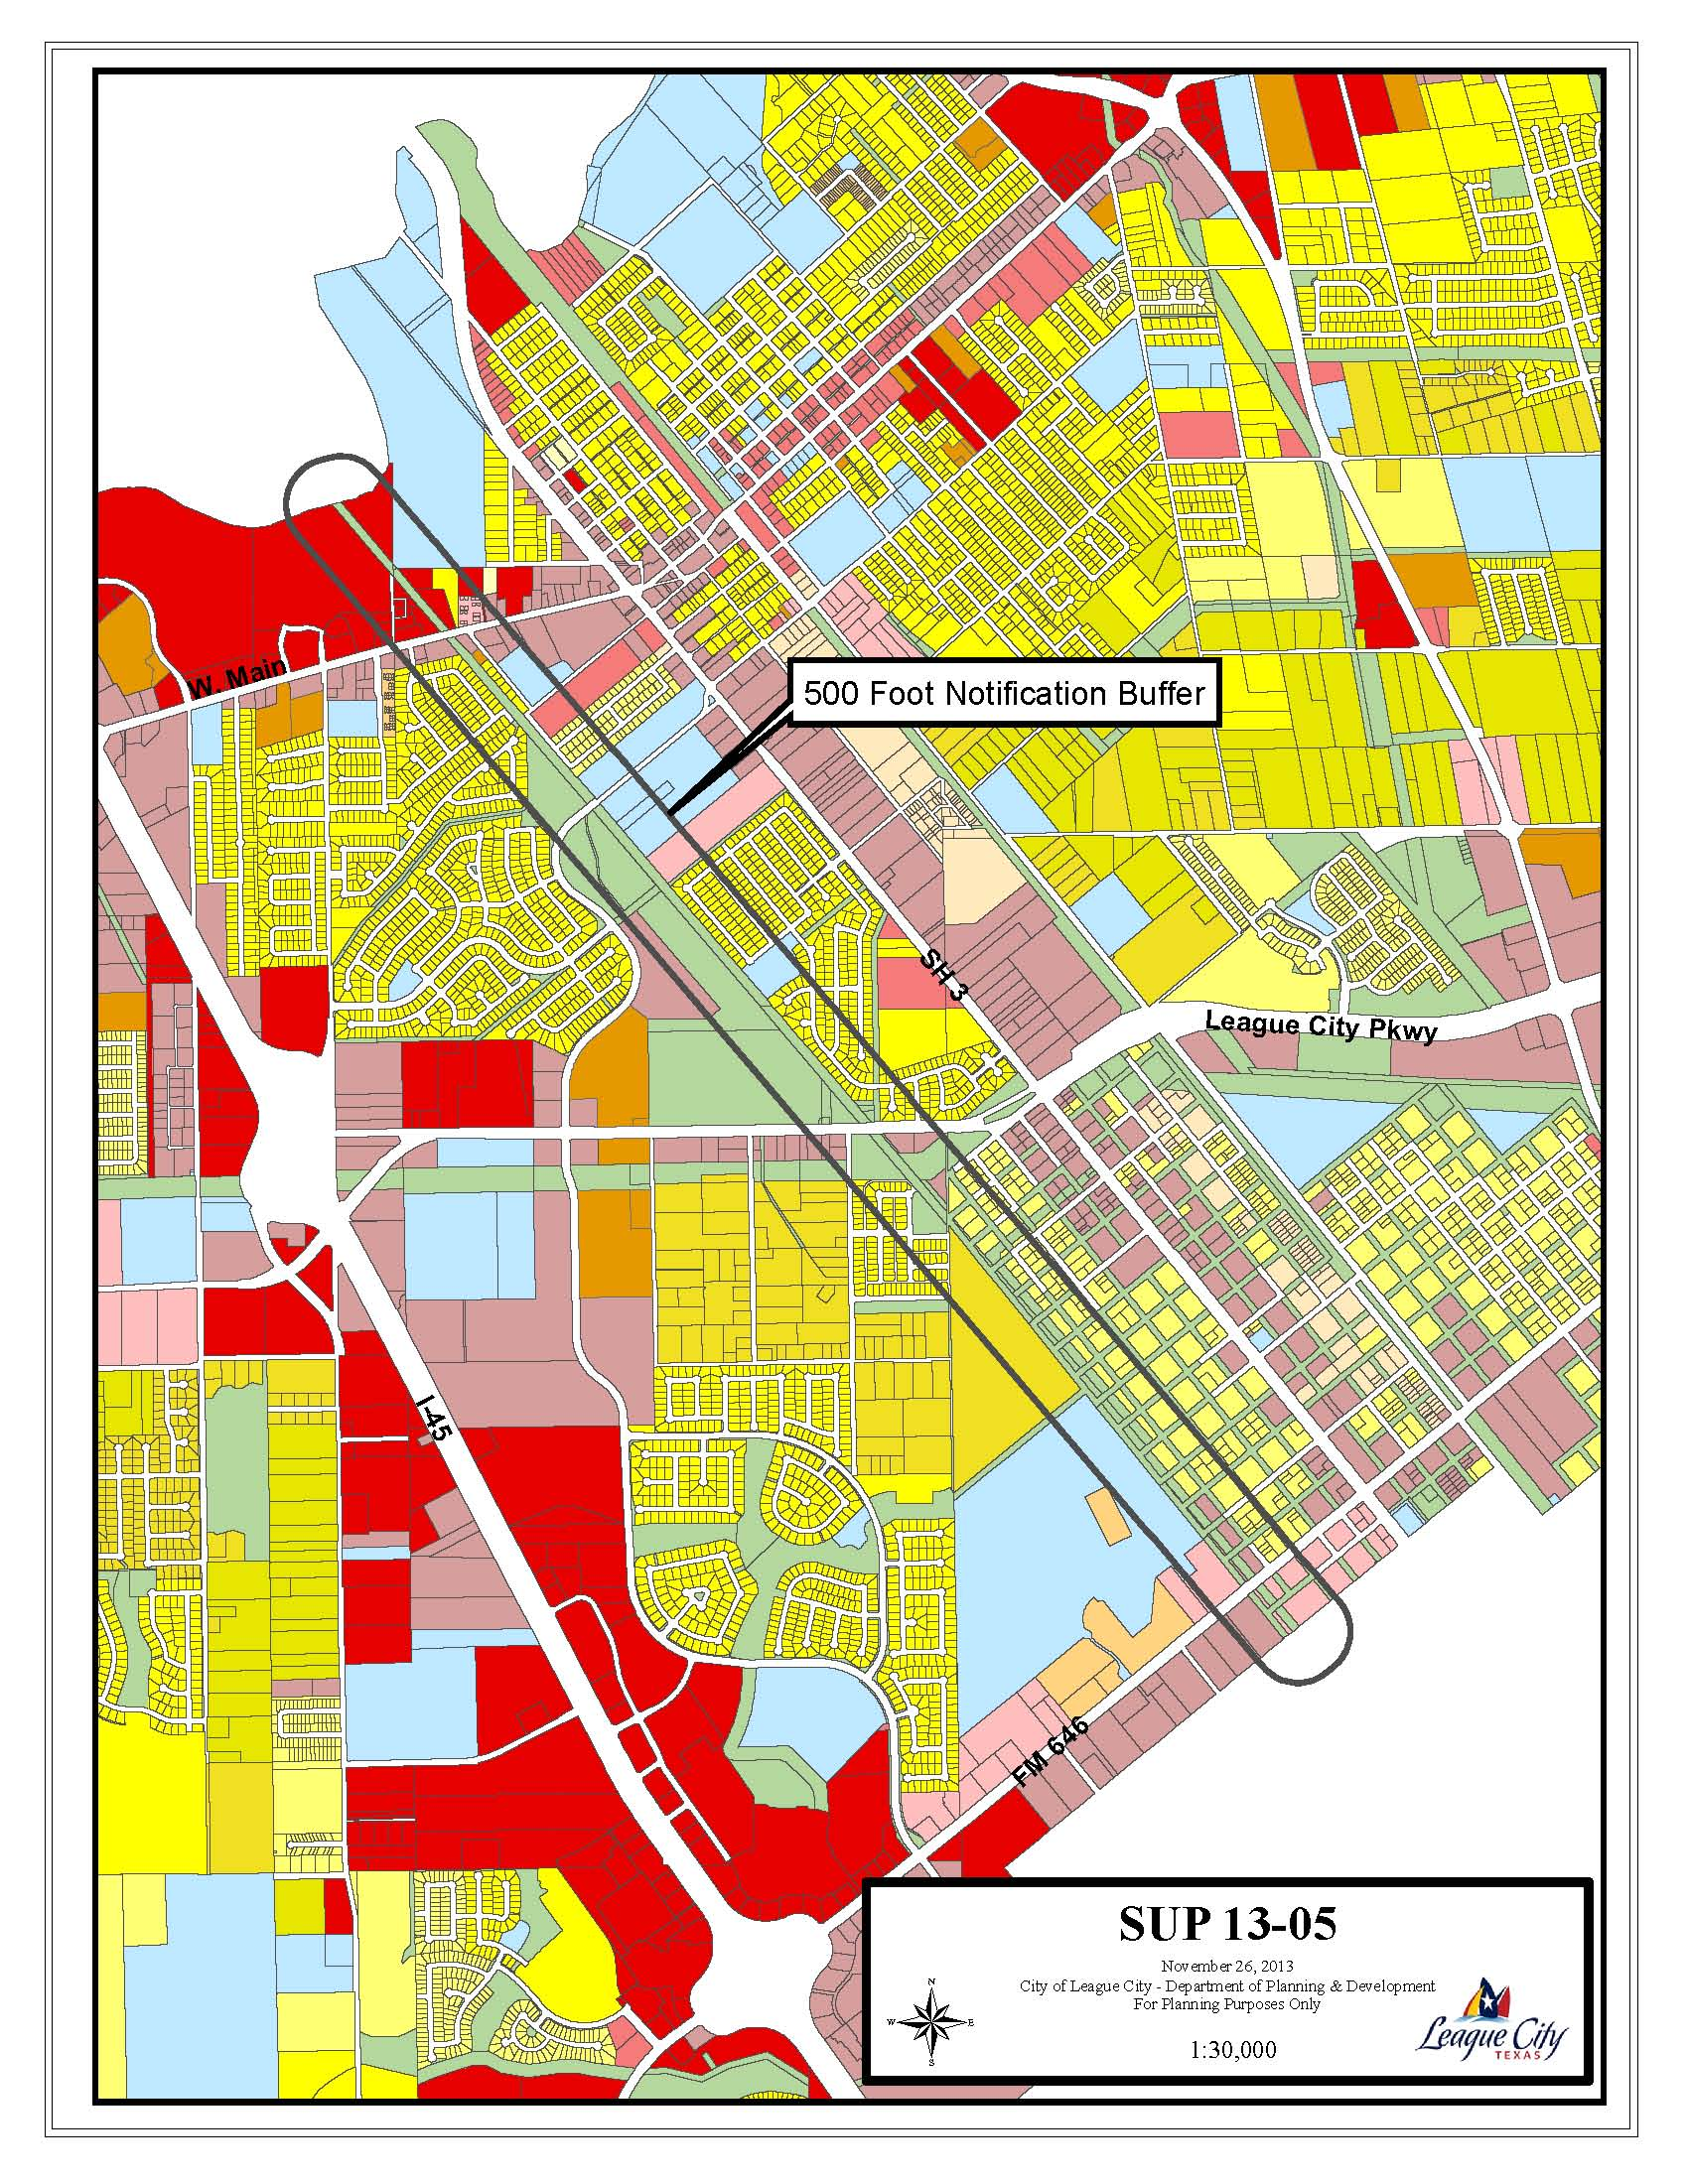 SUP13-05 Zoning Map.jpg